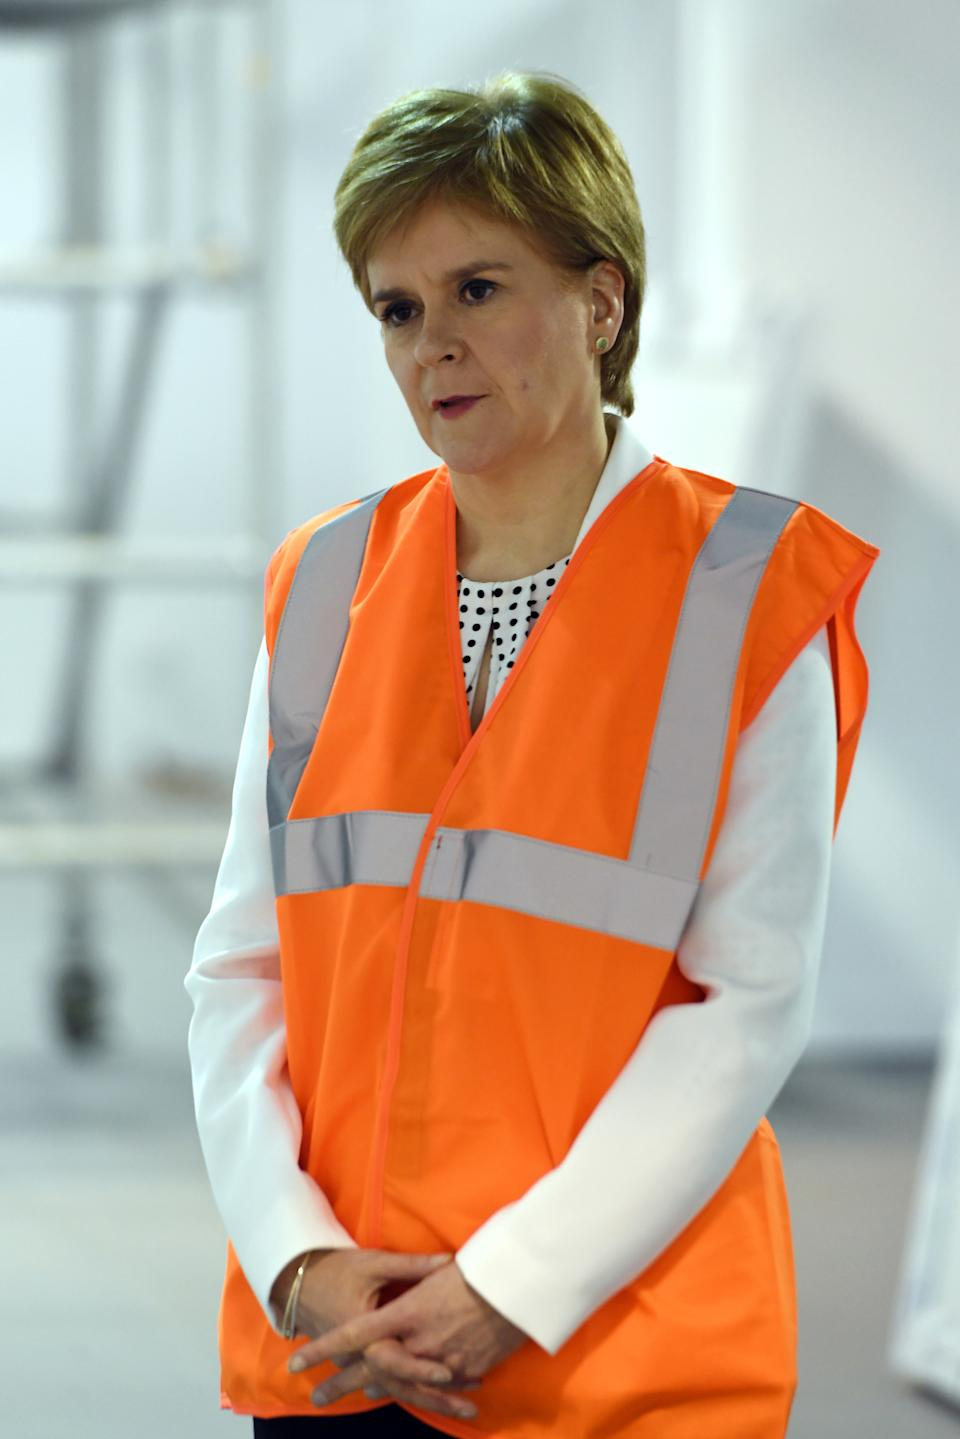 GLASGOW, SCOTLAND - APRIL 10: Scotland's First Minister Nicola Sturgeon tours the NHS Louisa Jordan field hospital, set up at the Scottish Events Campus (SEC) to potentially help with extra patients caused by the coronavirus COVID-19 pandemic on April 10, 2020 in Glasgow, Scotland. There have been over 60,000 reported cases of the COVID-19 coronavirus in the United Kingdom and 8,958 deaths. The country is in its third week of lockdown measures aimed at slowing the spread of the virus. (Photo by Andy Buchanan - WPA Pool / Getty Images)